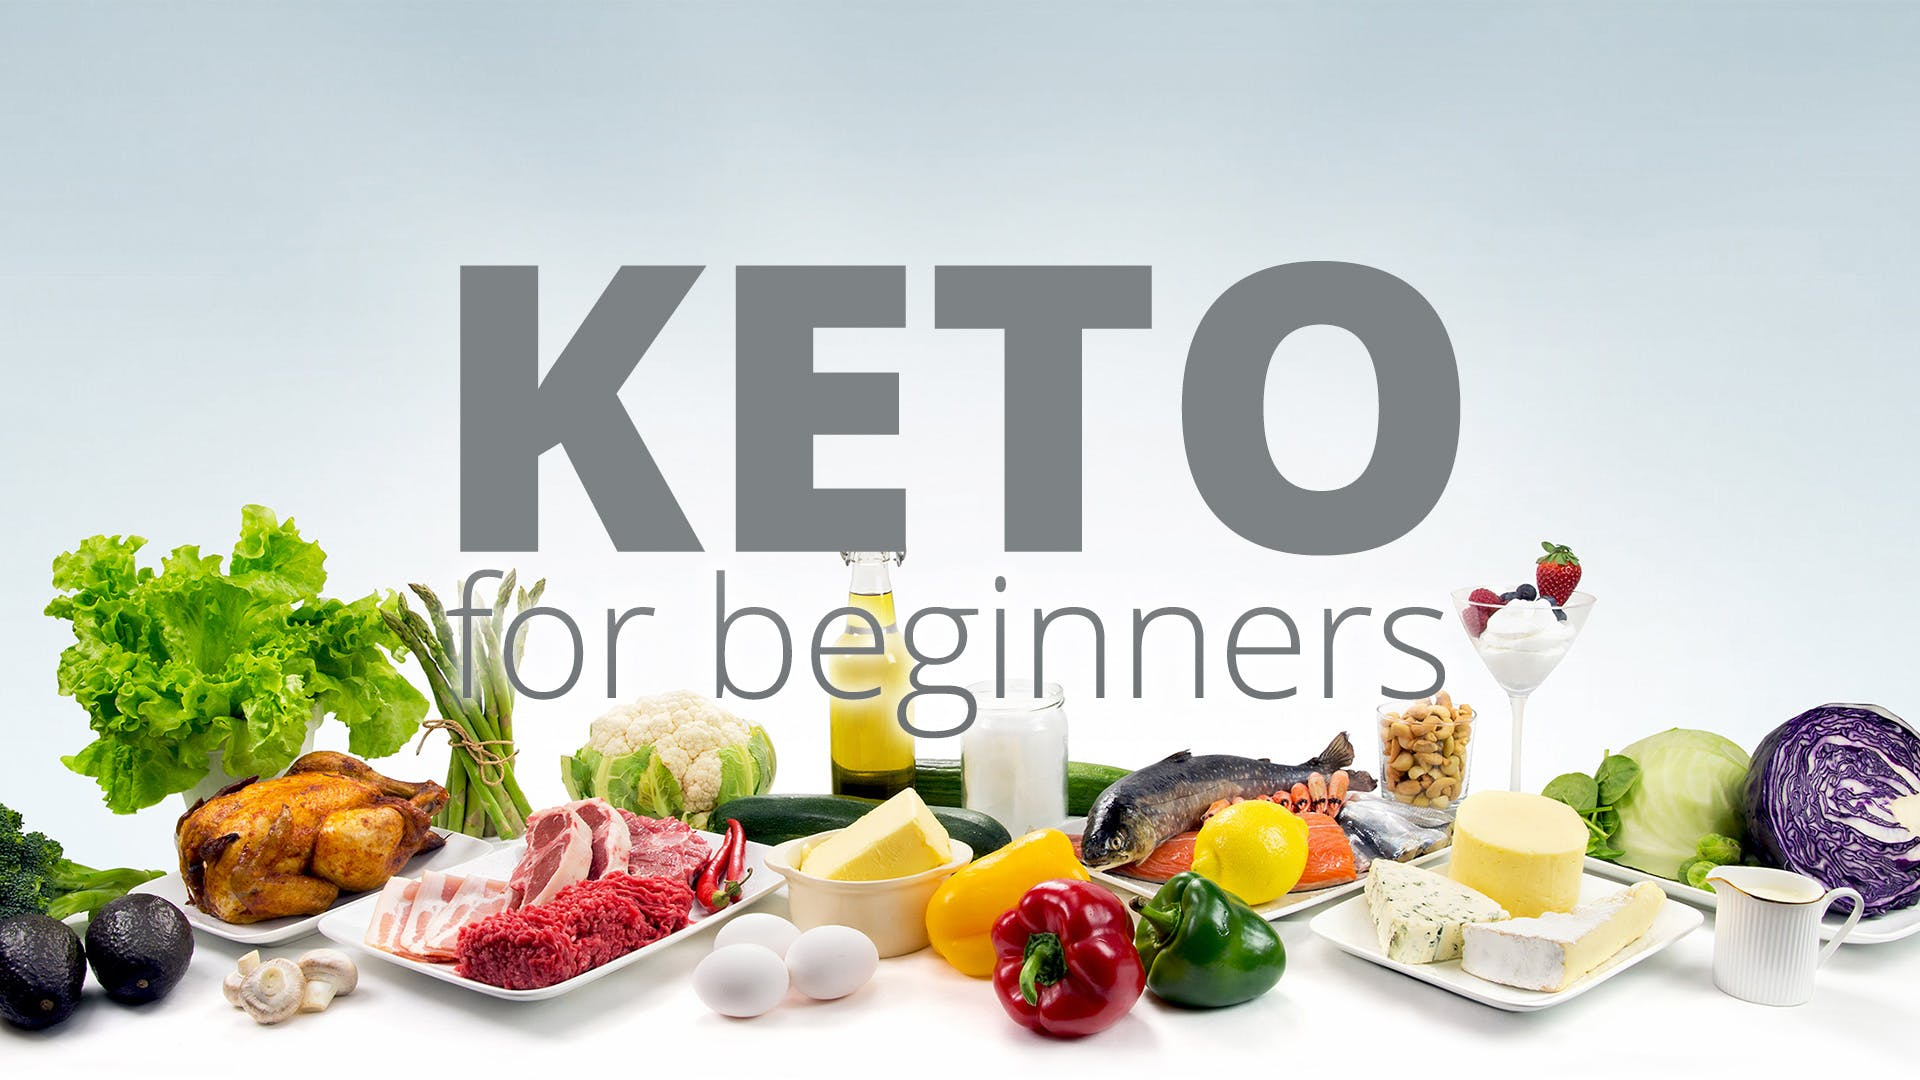 #1 guide: A keto diet for beginners